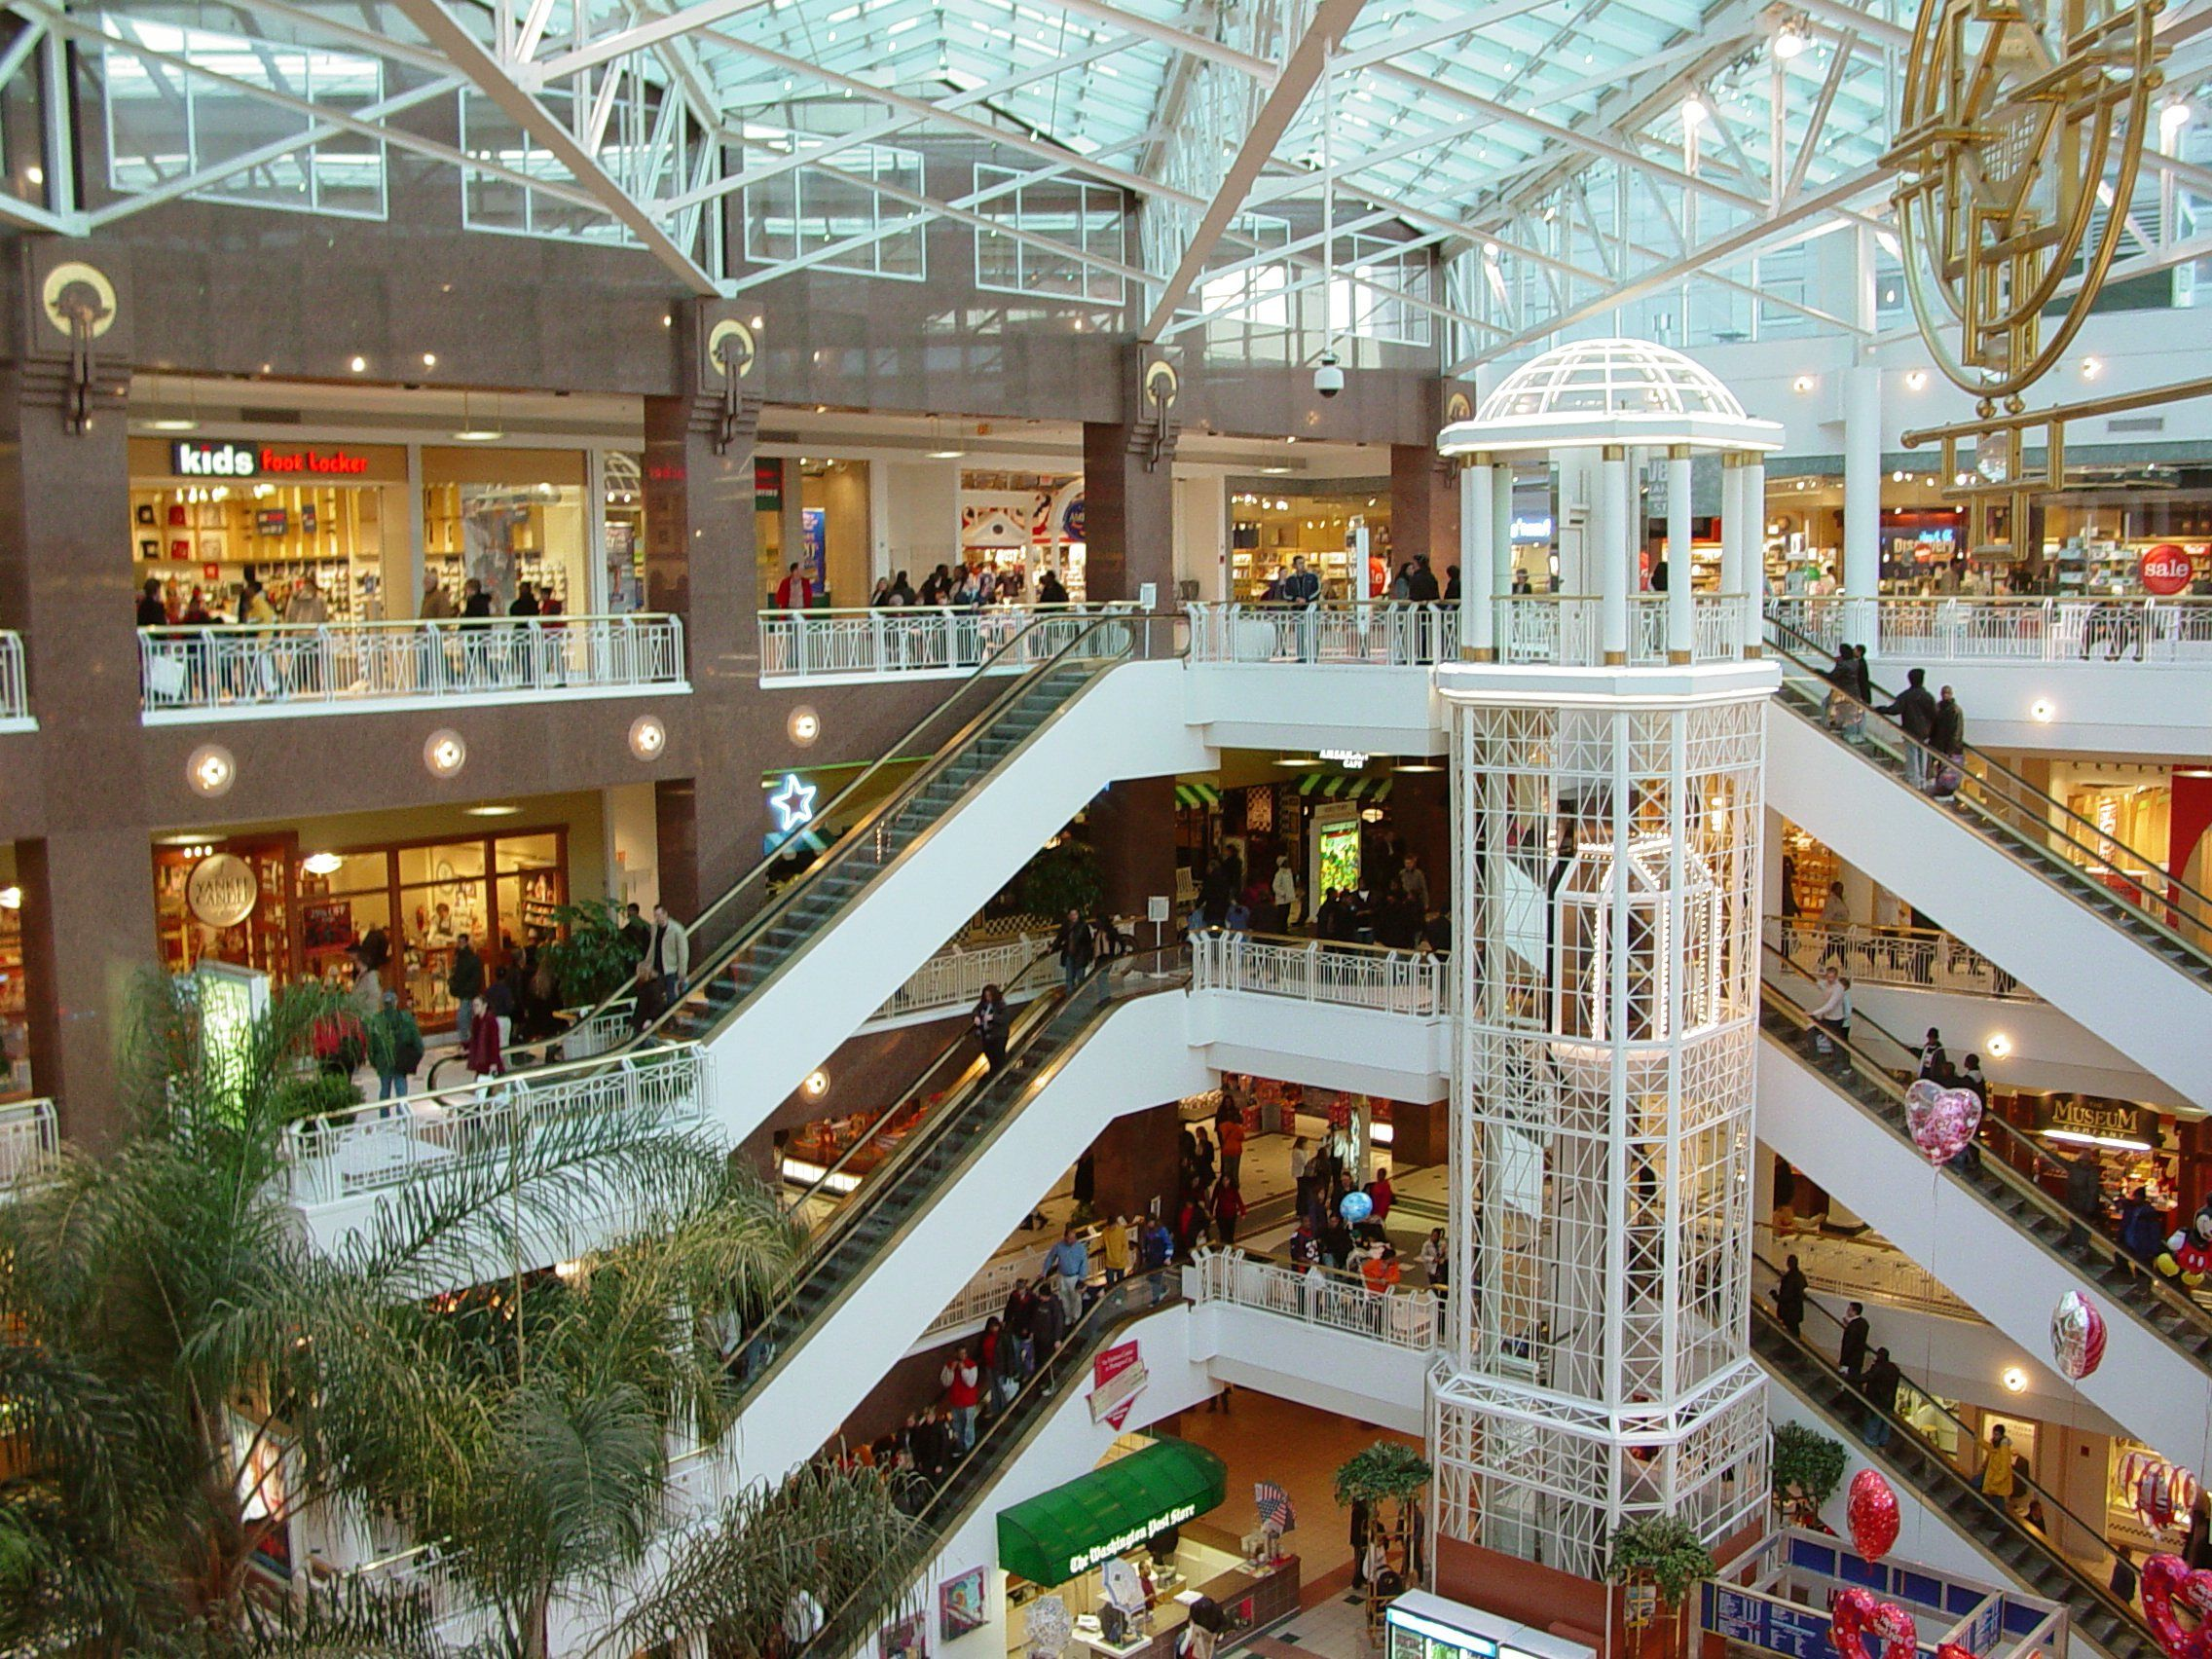 Top Largest Malls In The US Washington Dc Air Conditions - Largest malls in usa